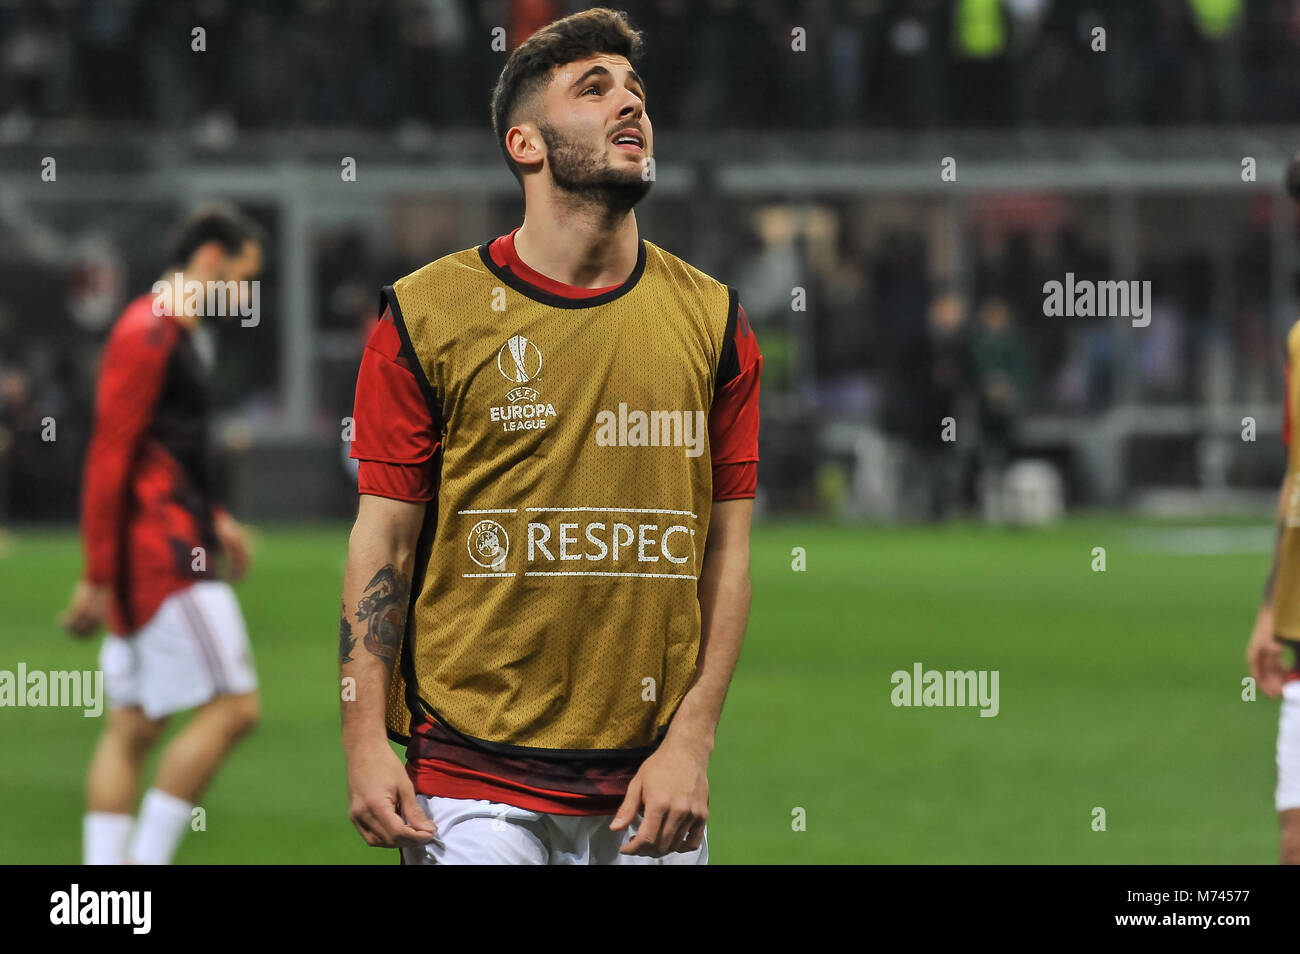 Milan, Italy. 8th March, 2018. Patrick Cutrone (AC Milan)during the match UEFA Europa League between AC Milan and Stock Photo